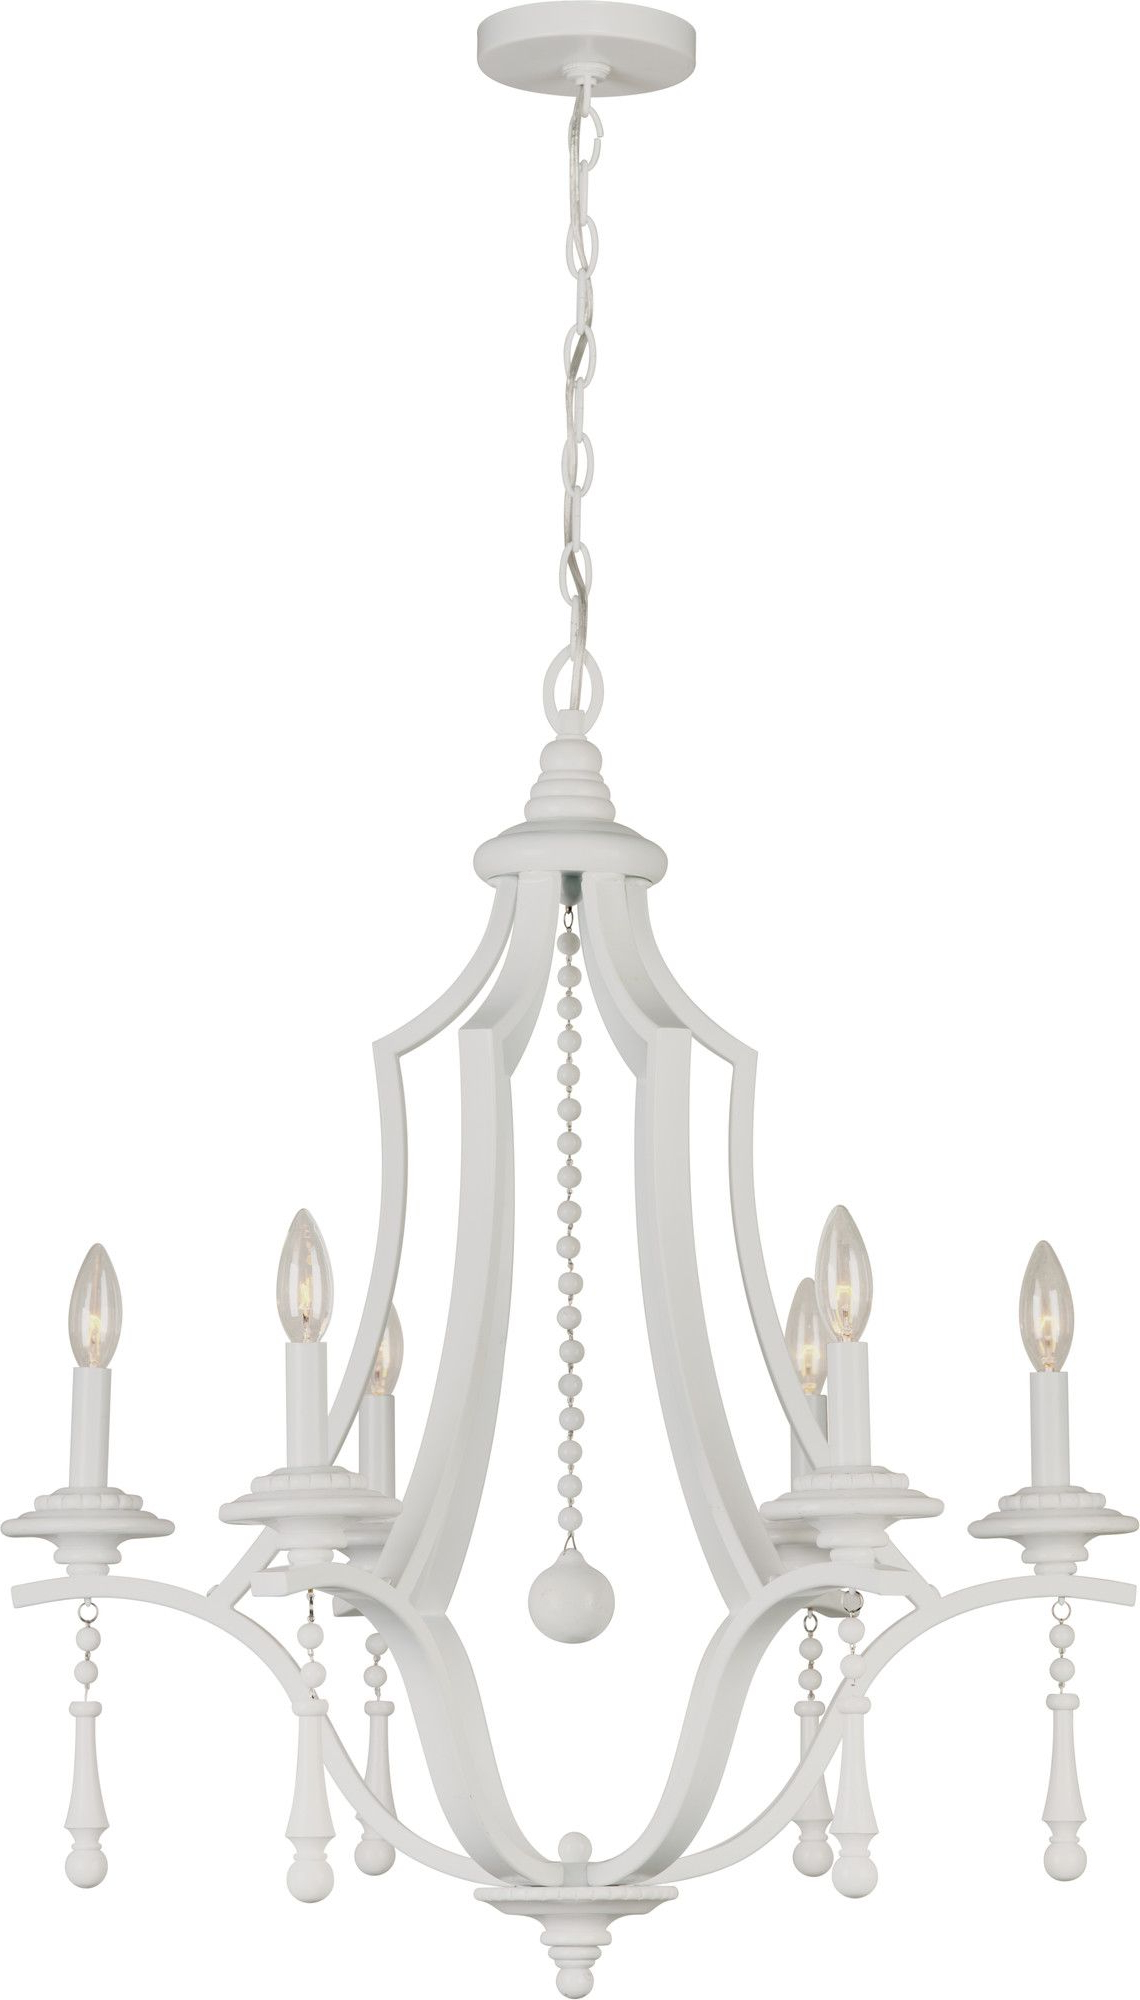 Diaz 6-Light Candle Style Chandeliers for Popular Parson 6 Light Chandelier